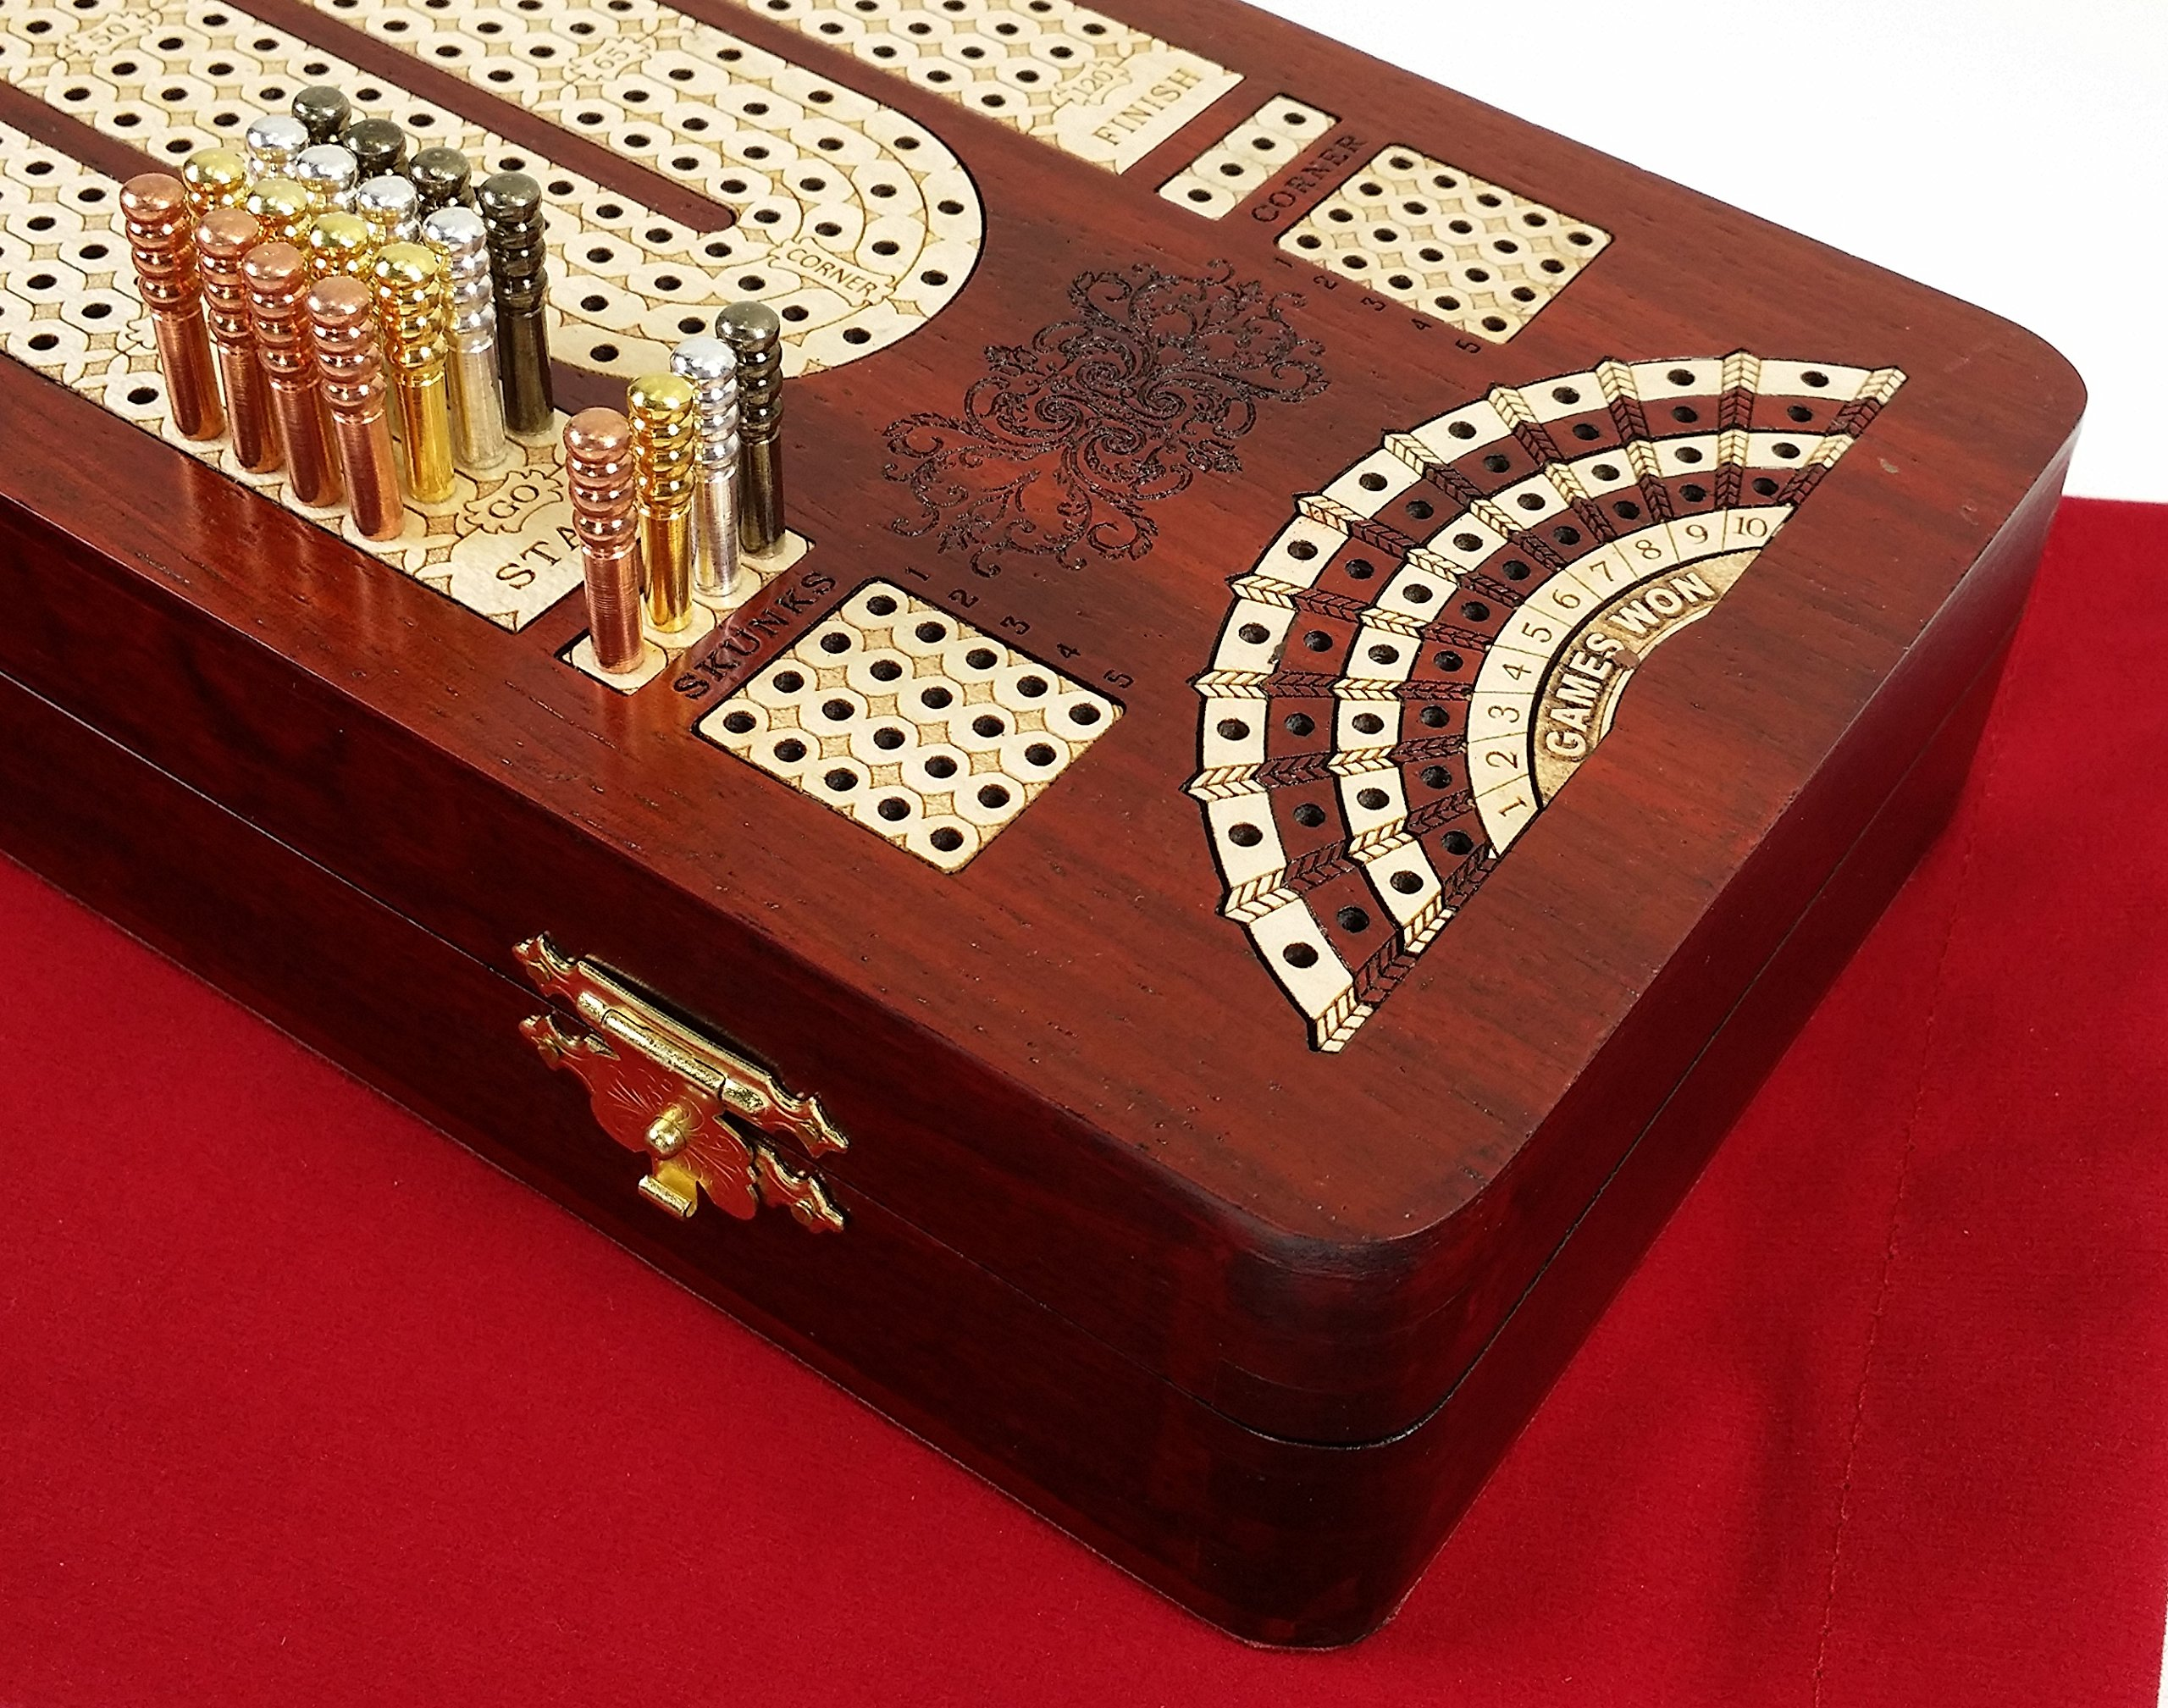 14'' 4 Track Continuous Cribbage Board W/ Card Storage Maple Tracks on Bloodwood - Corner, Skunk & Games Won